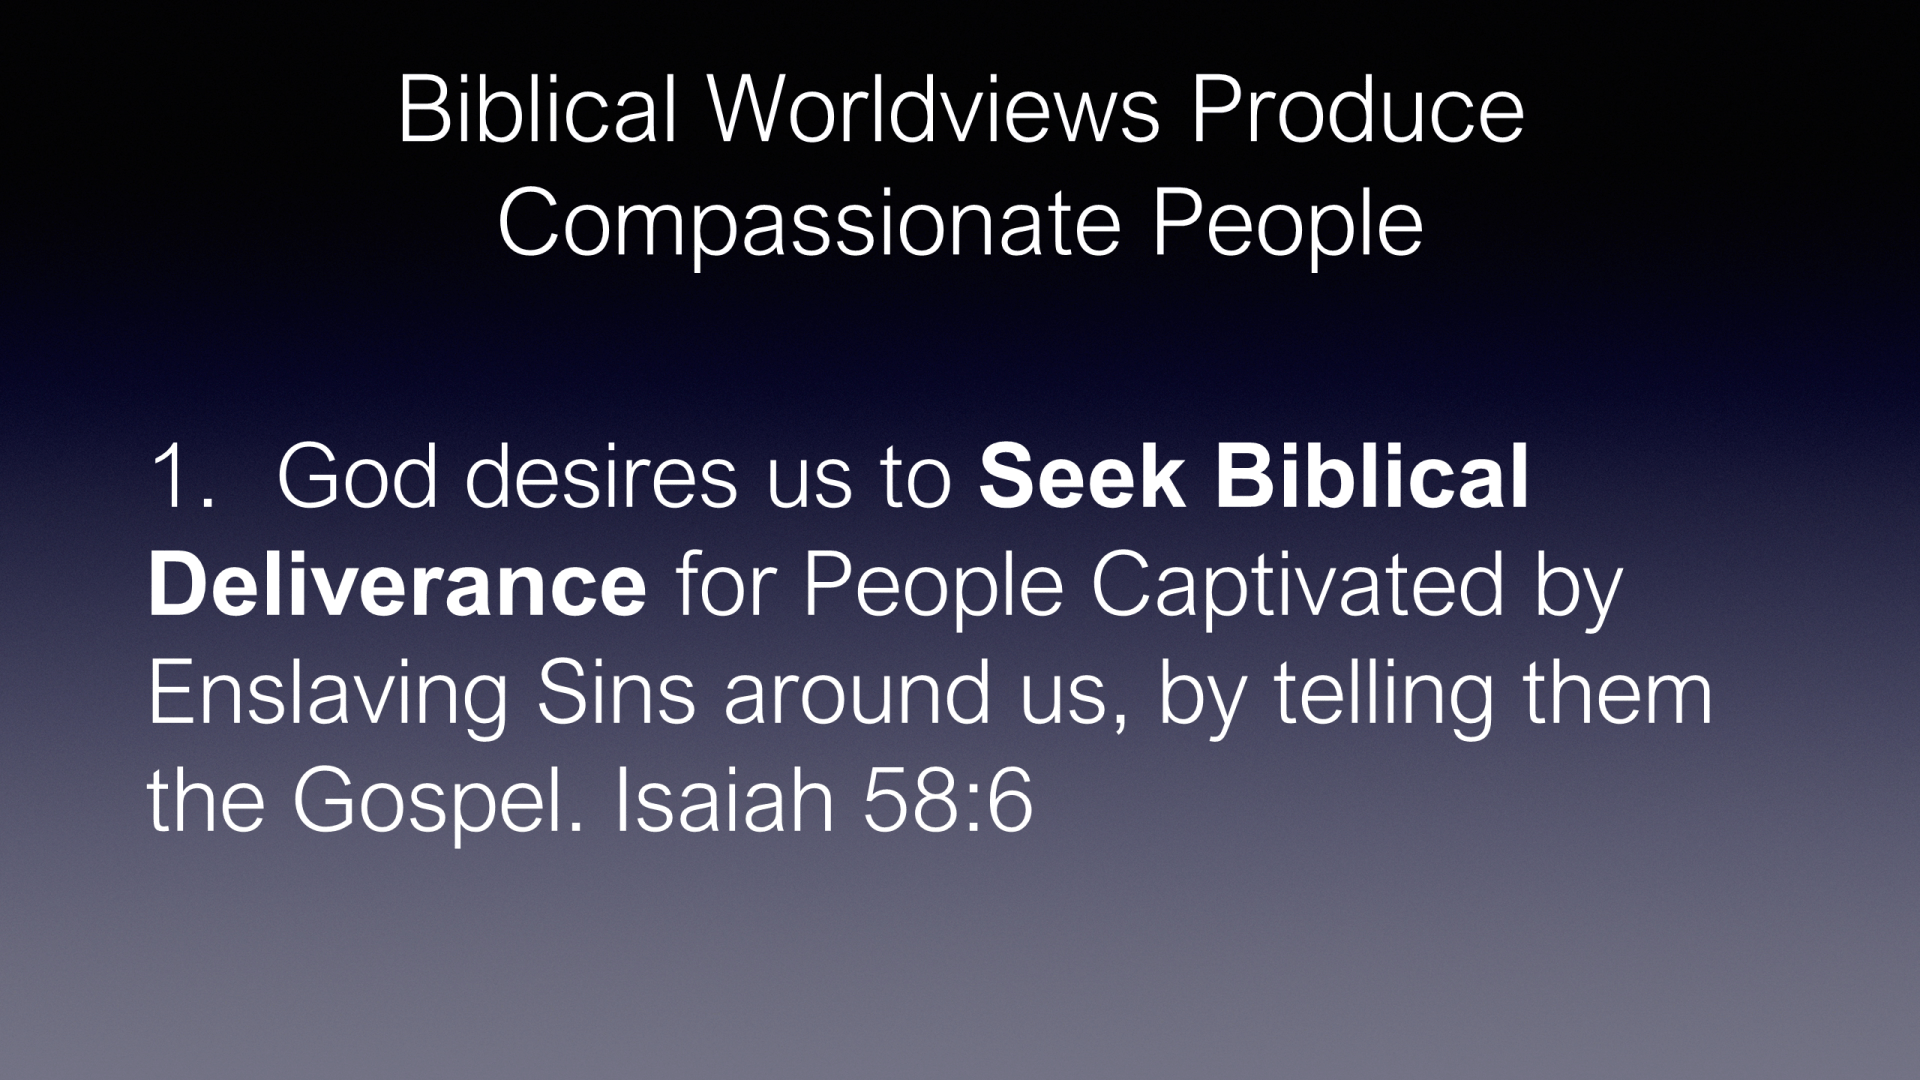 HFG-07 - Applying a Biblical Worldview of Love & Compassion (12)